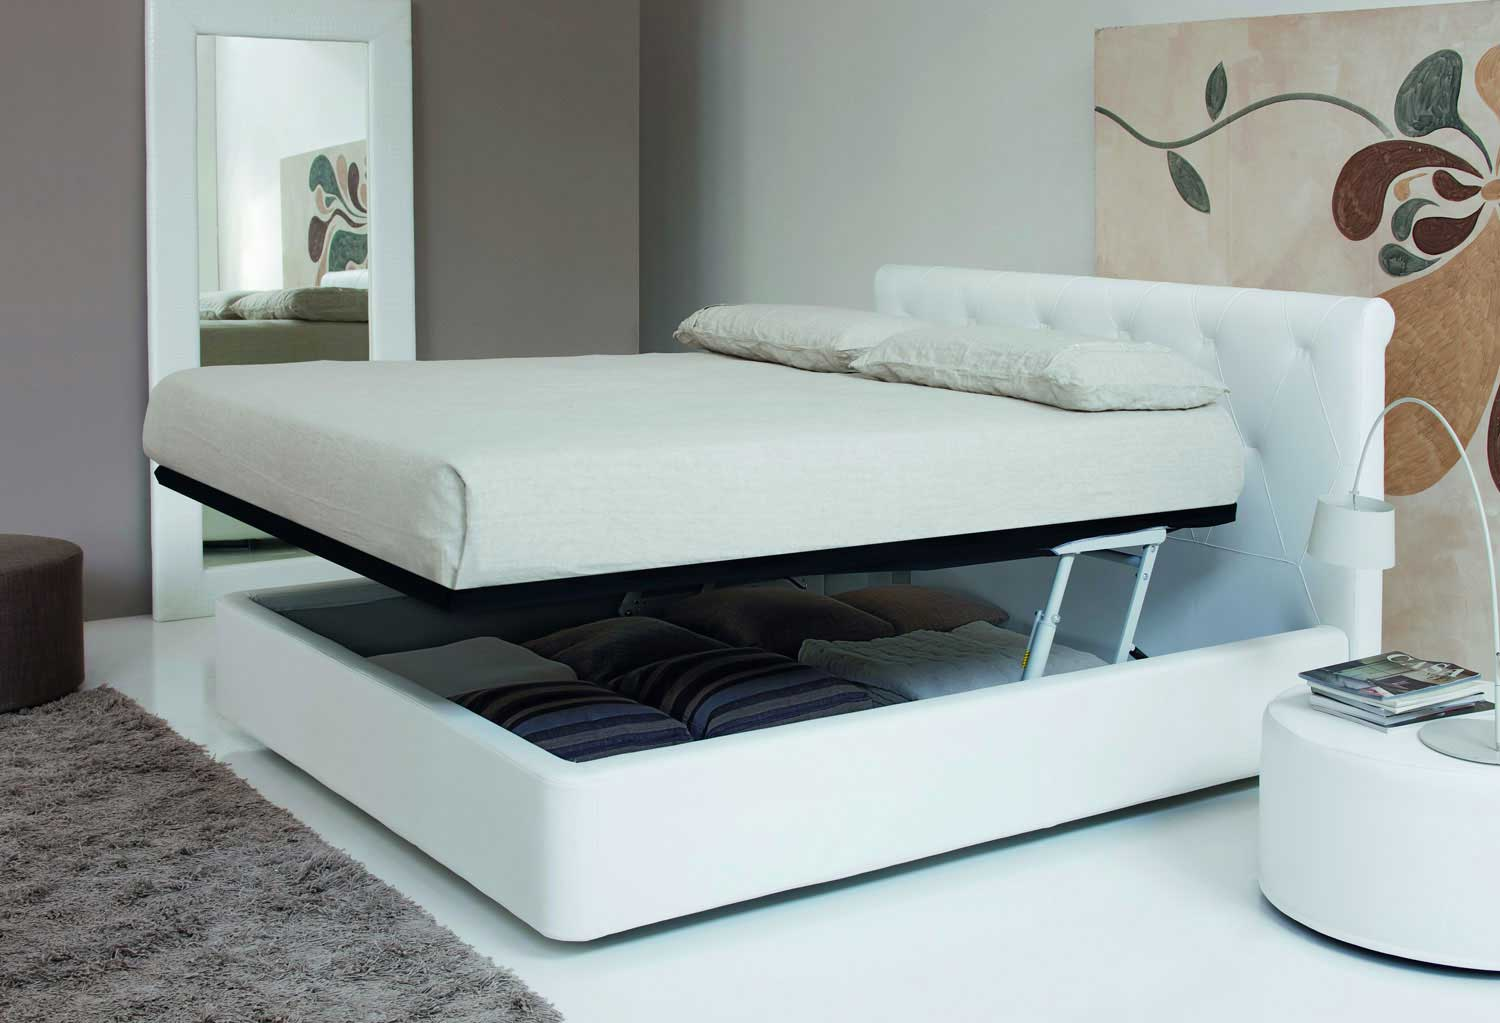 moderne doppelbett ideen 36 designer betten markanten. Black Bedroom Furniture Sets. Home Design Ideas